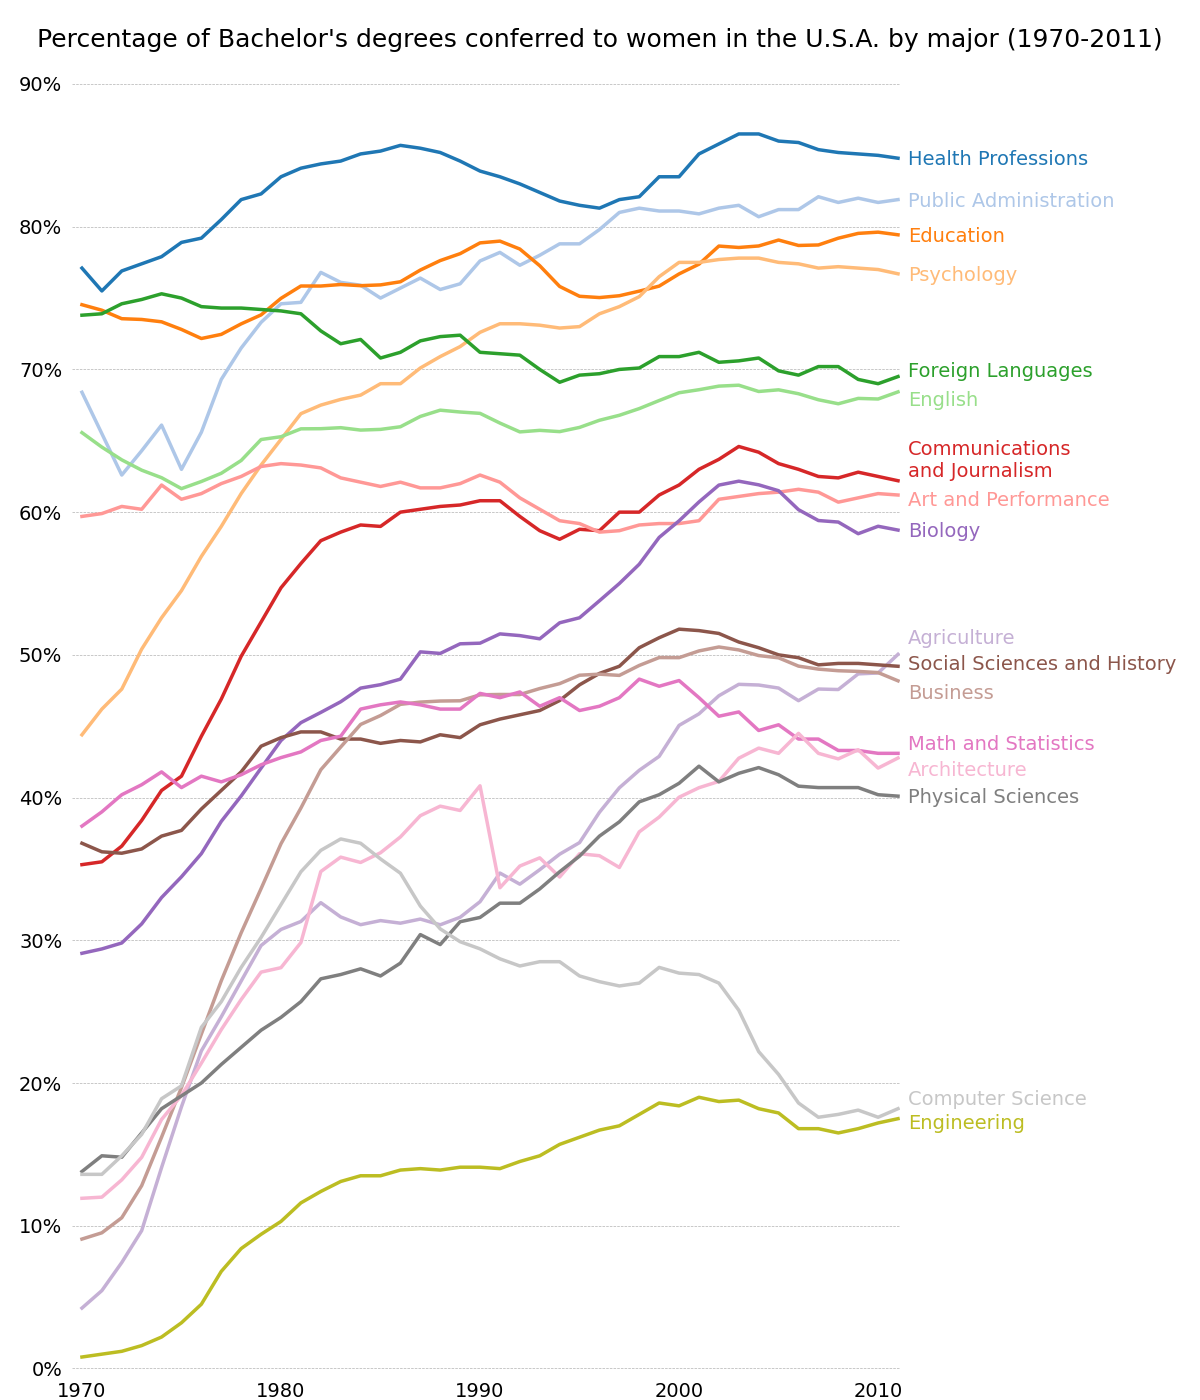 ../../_images/sphx_glr_bachelors_degrees_by_gender_001.png